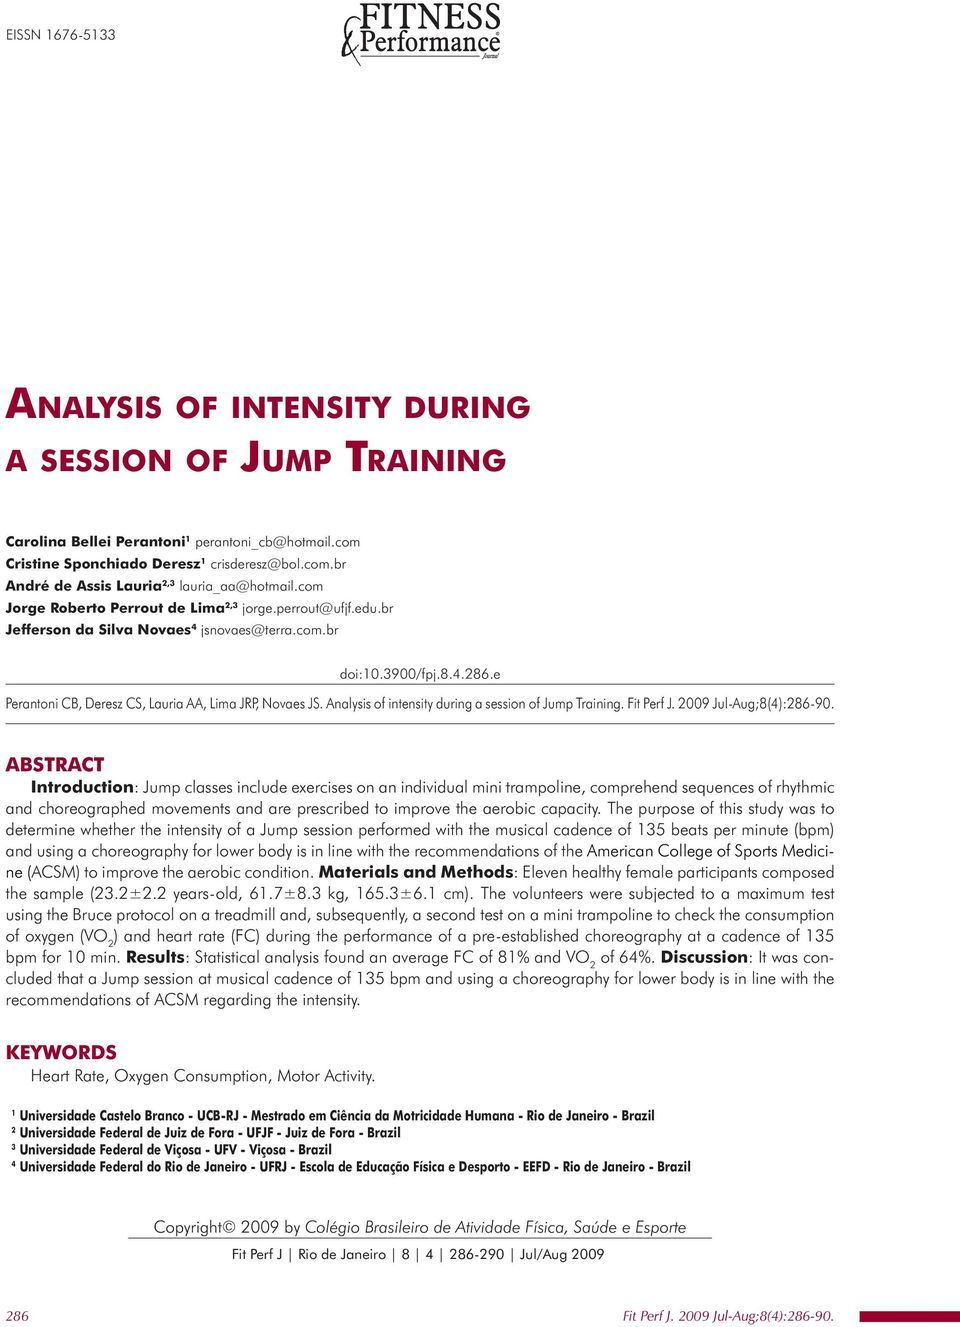 Analysis of intensity during a session of Jump Training.